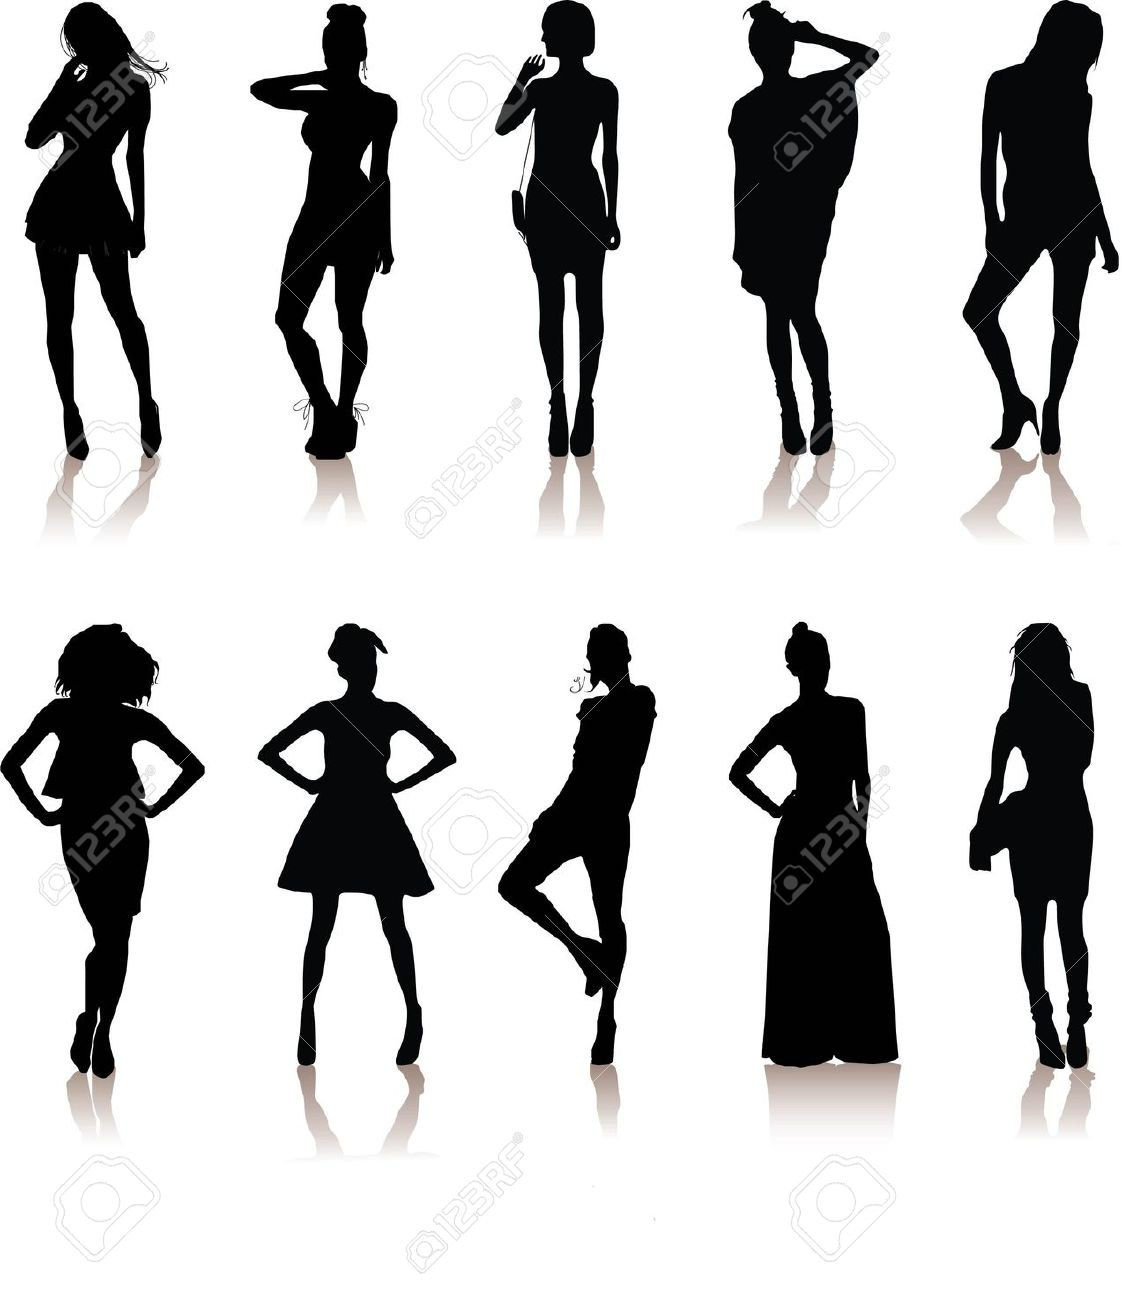 Clipart male models.